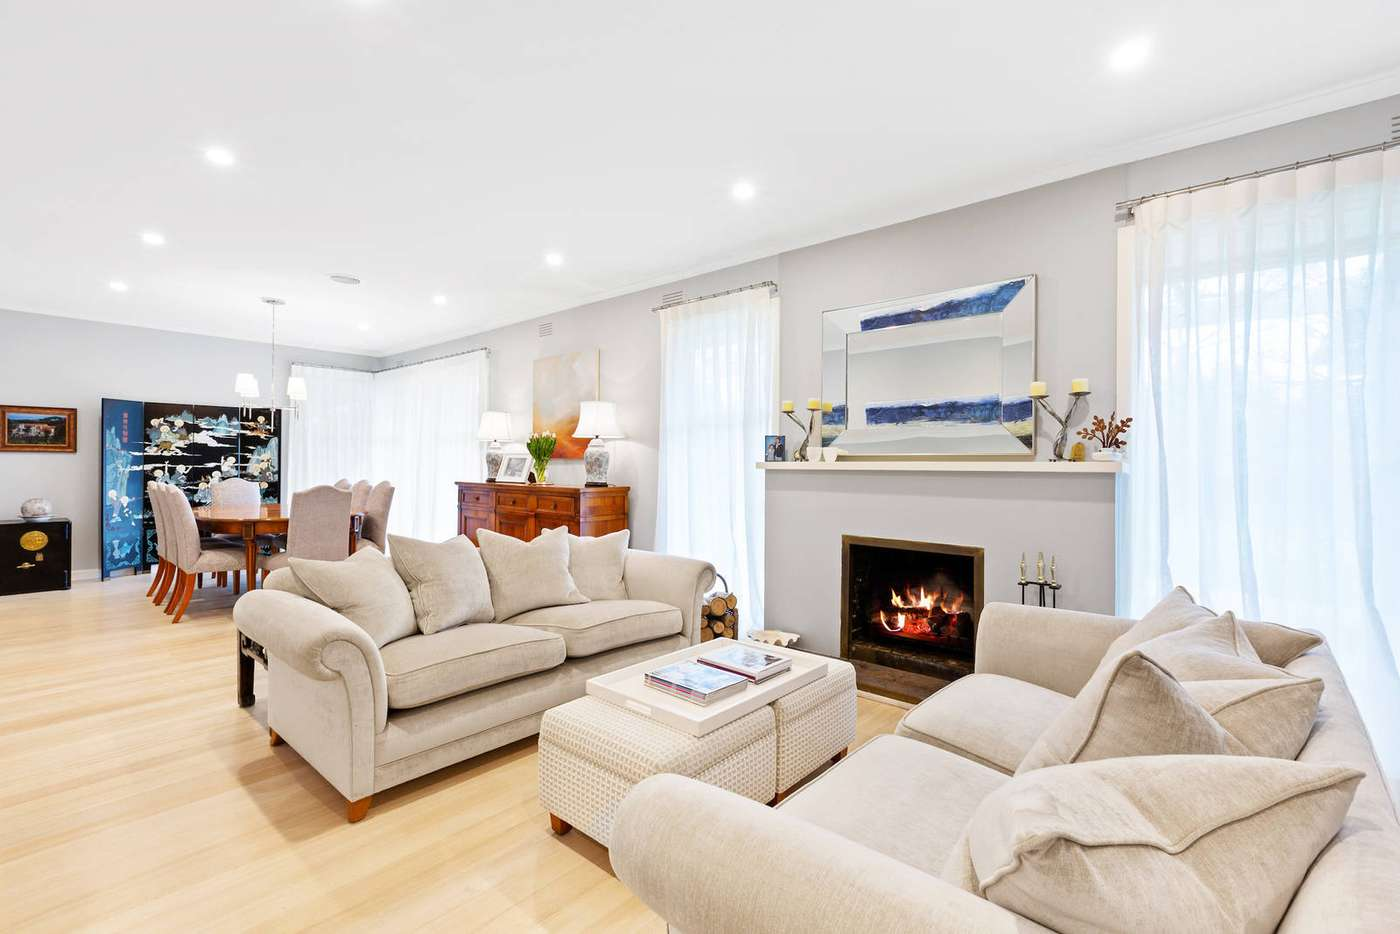 Sixth view of Homely house listing, 78 Old Mornington Road, Mount Eliza VIC 3930